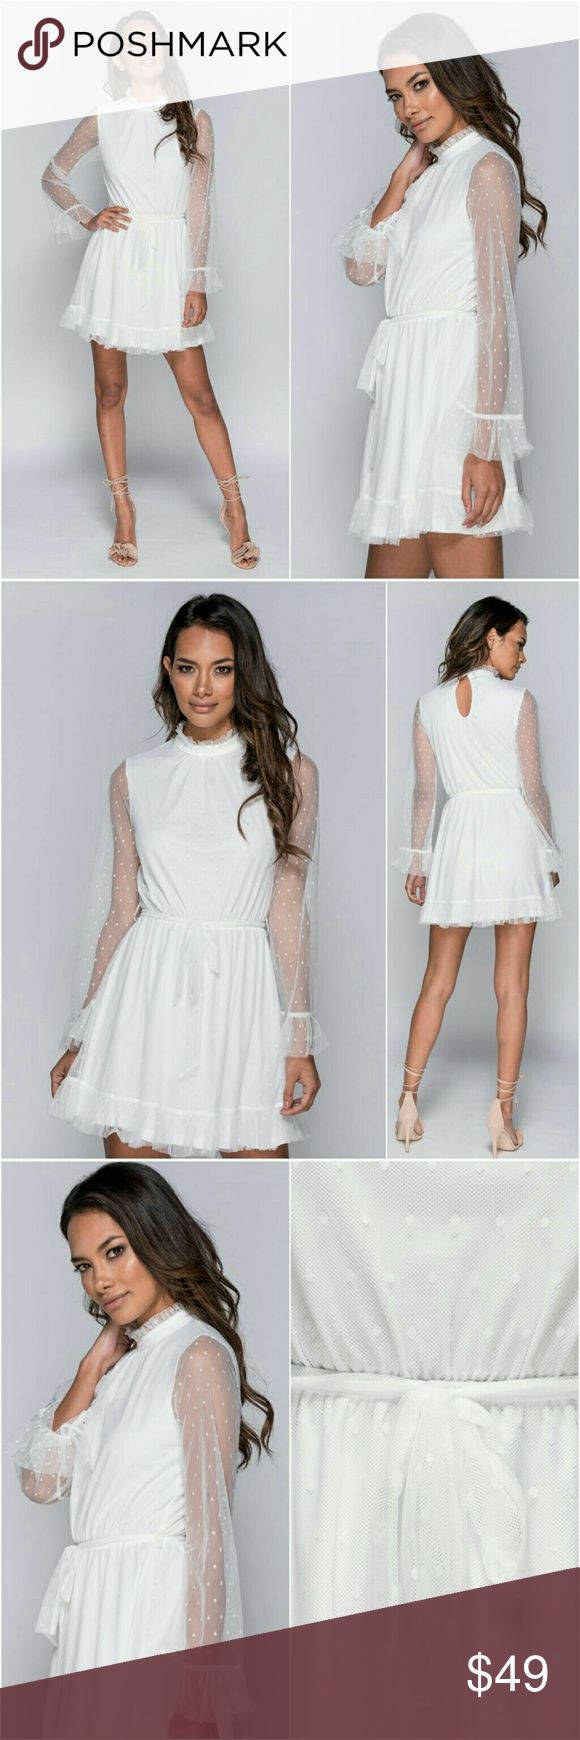 Parisian White Sheer Sleeve Polka Dot Mini Dress Ruffles are in this Fashion 2018 Season! This Parisian Dress has it all! Gorgeous lined, Frilly white sheer polka dot, long sleeves, with tie belt! Oh yes, those modestly ruffled cuffs & hem give this Stunning Mini Dress all the right touches! Sizes converted from UK Chart to US Sizes. Viva Nashville Boutique Dresses Mini